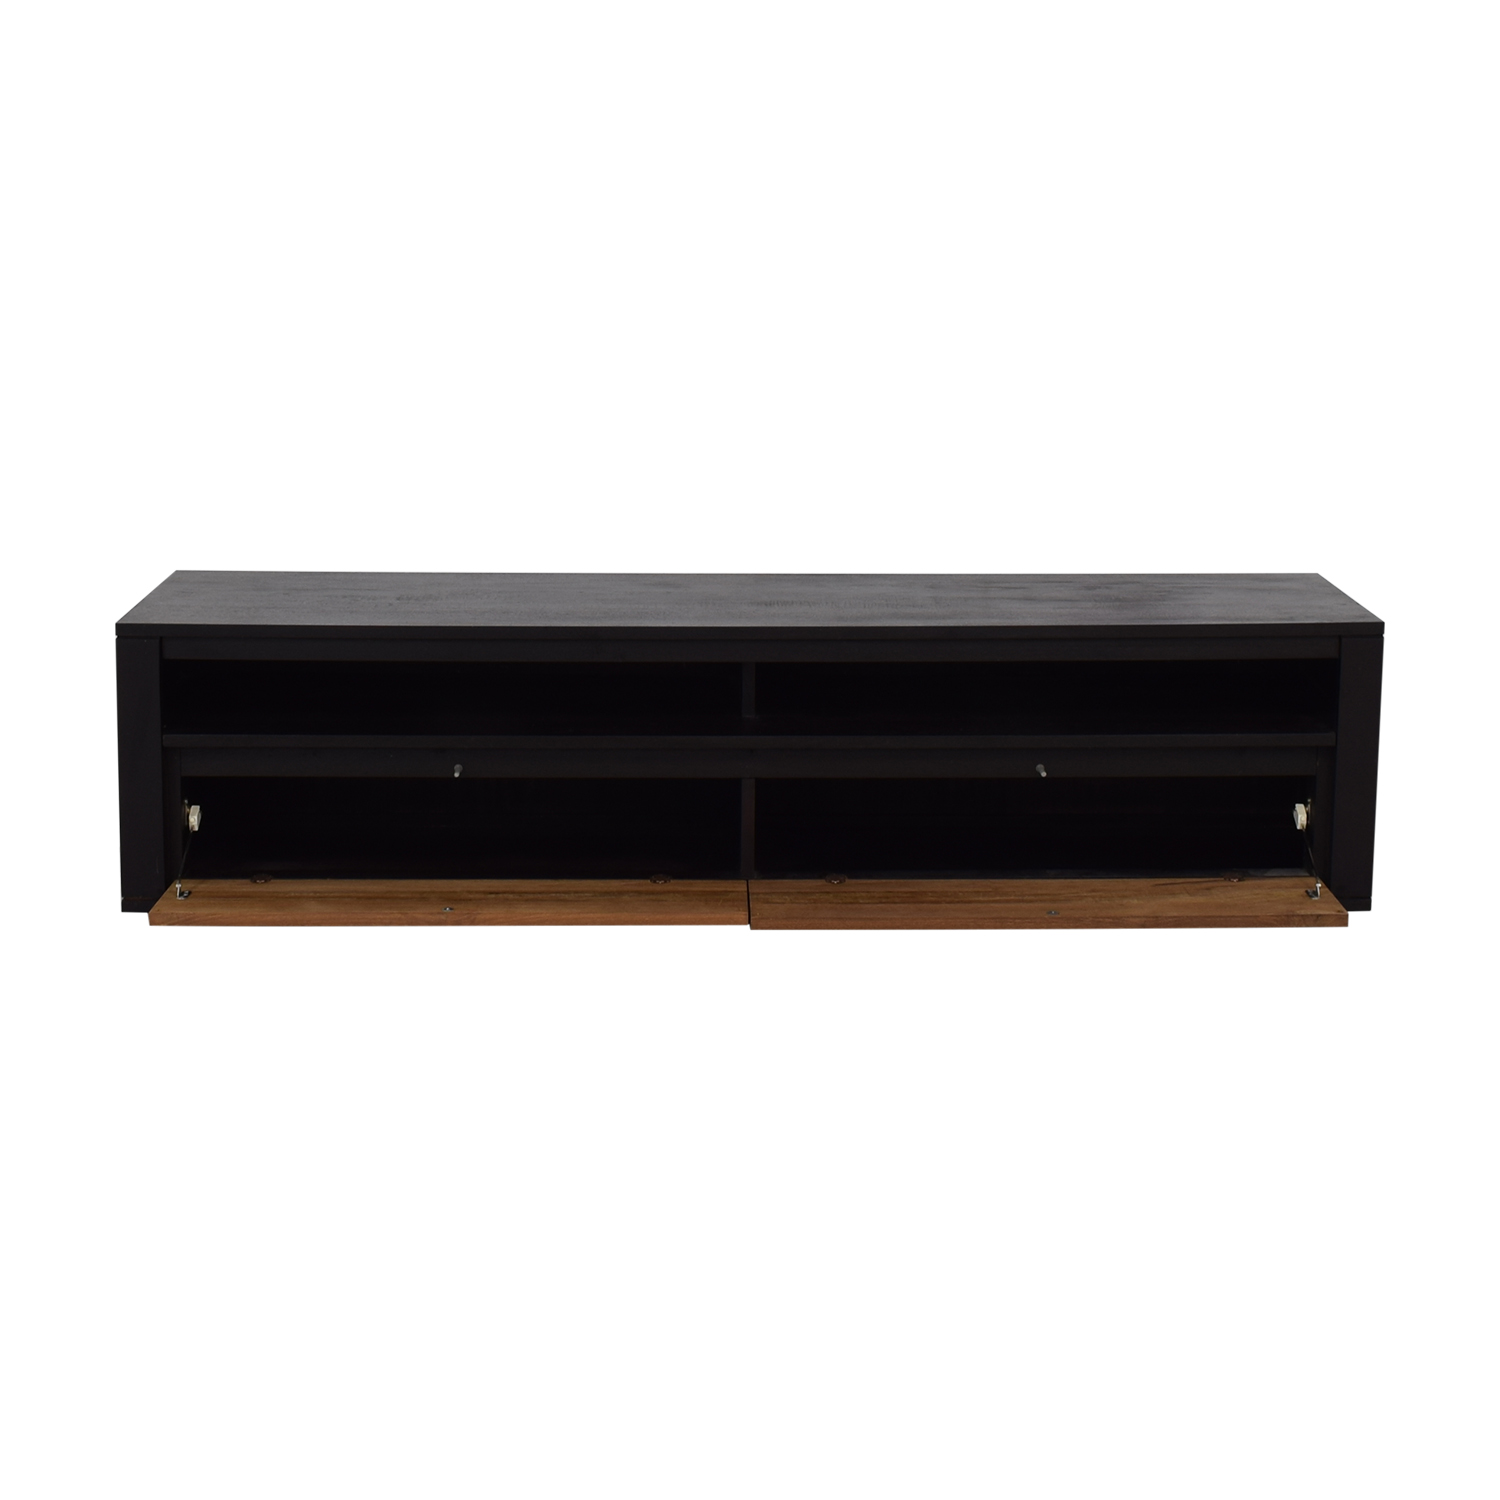 ABC Carpet & Home ABC Carpet & Home Form Teak Media Console Media Units